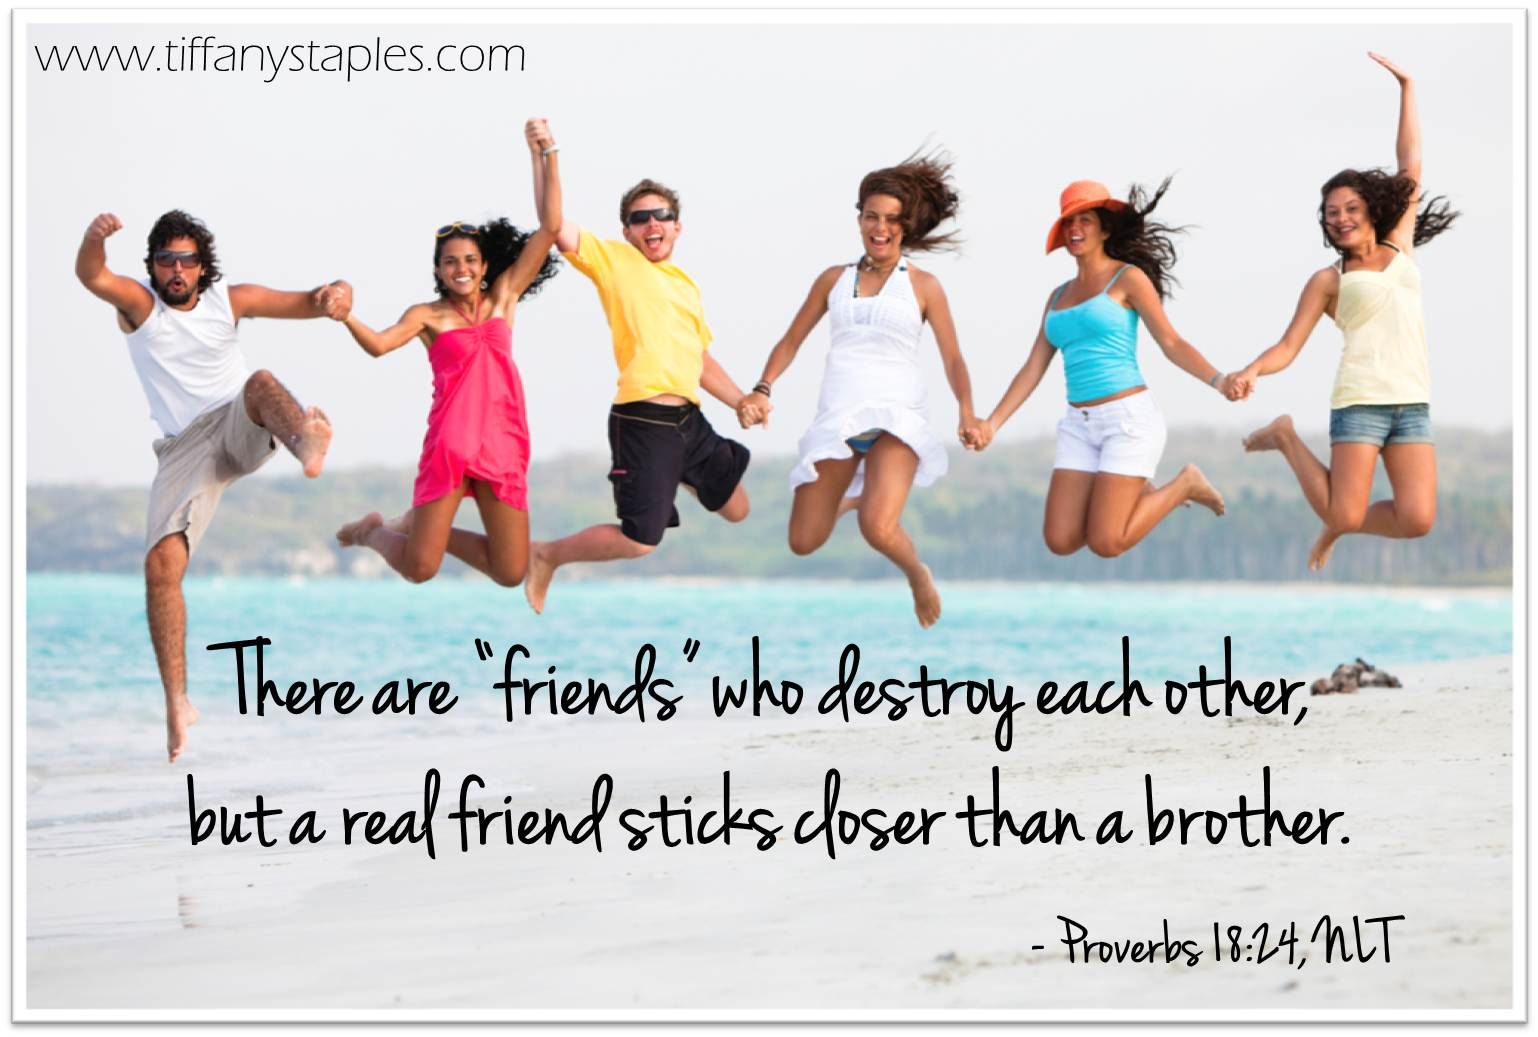 Bible Verses About Friendship English : Bible quote on friendship quotes